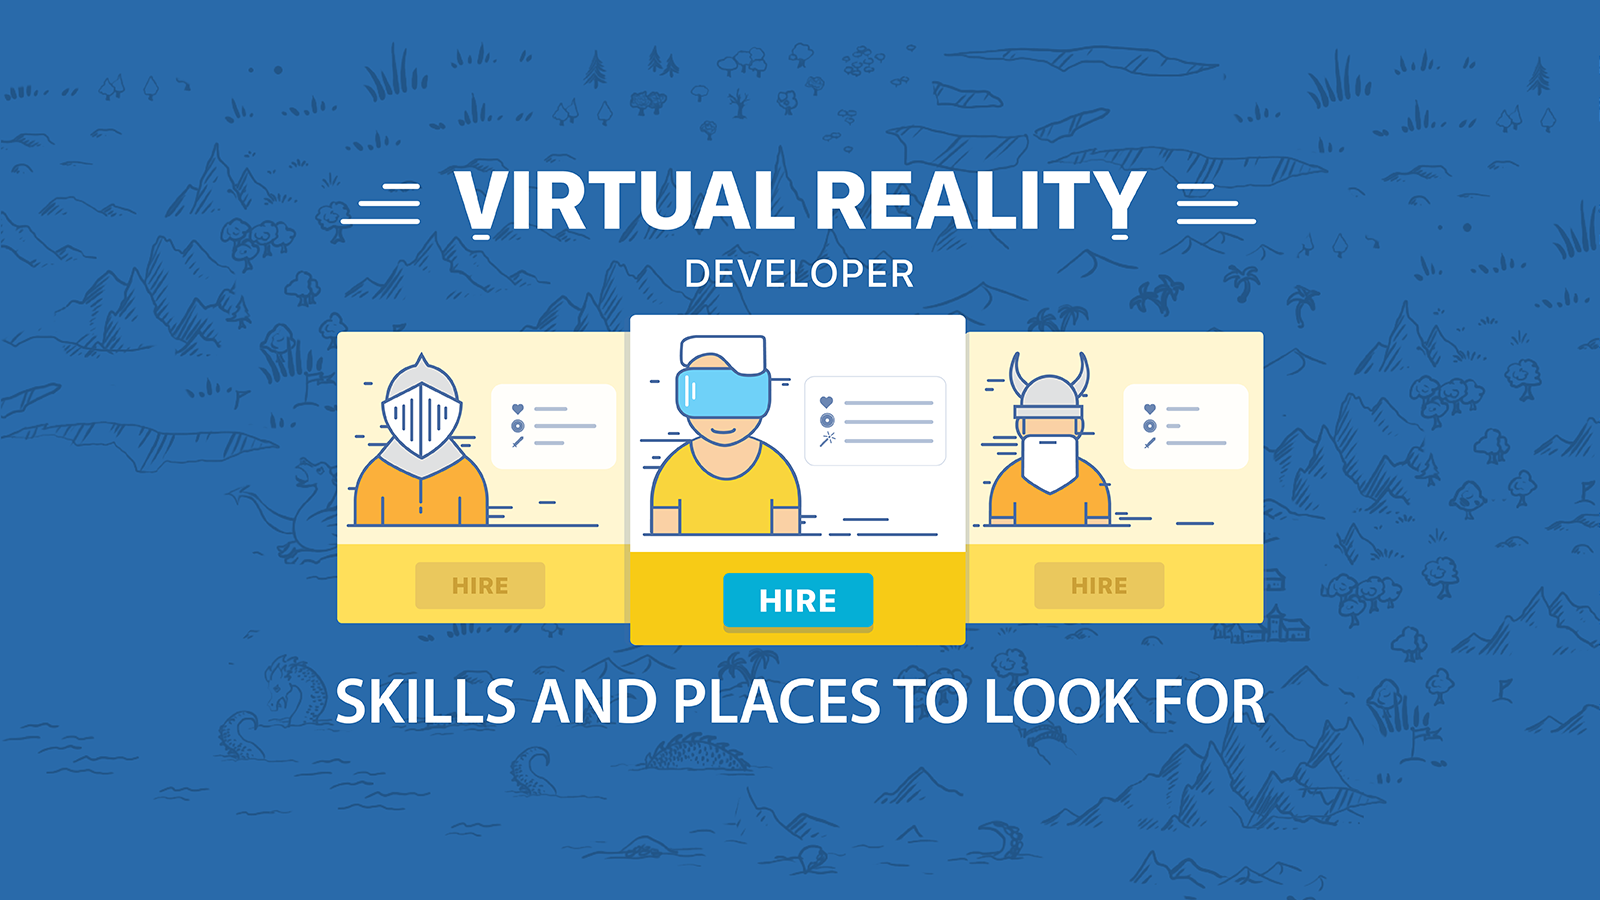 How to hire VR developer: Skills and places to look for